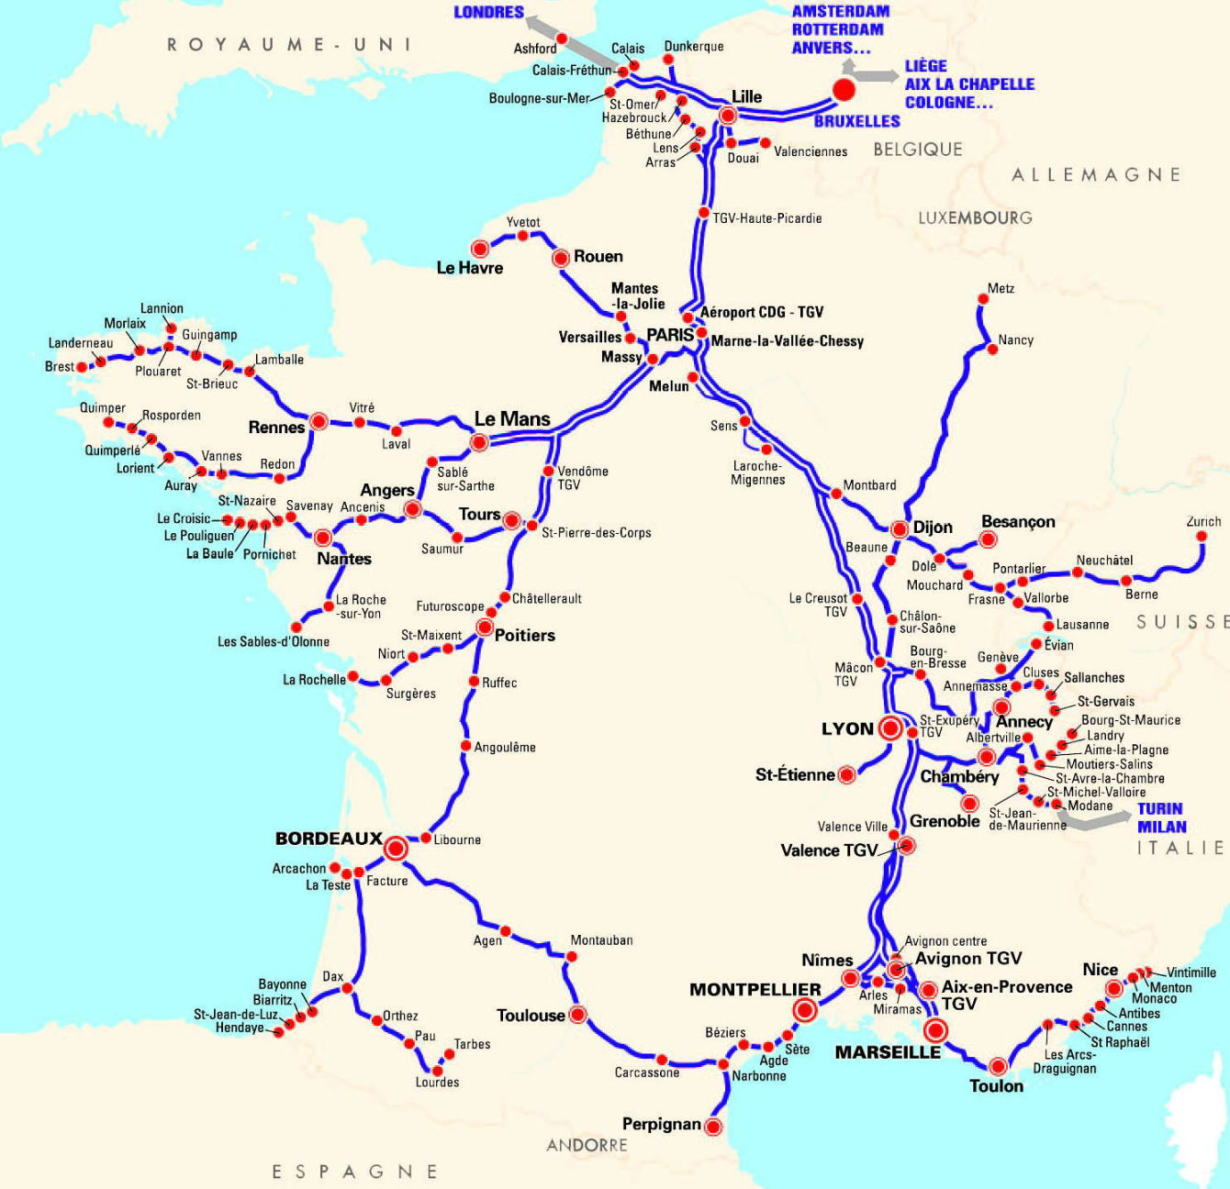 att map with 0001 Discount Map France on A3 48 99 01300000013093119266997145447 in addition Har Gar Banan additionally A3 30 82 01300000330778123107824250636 together with A0 76 60 01300000013054120695607504951 additionally A1 45 53 01300000188142121826534534235.